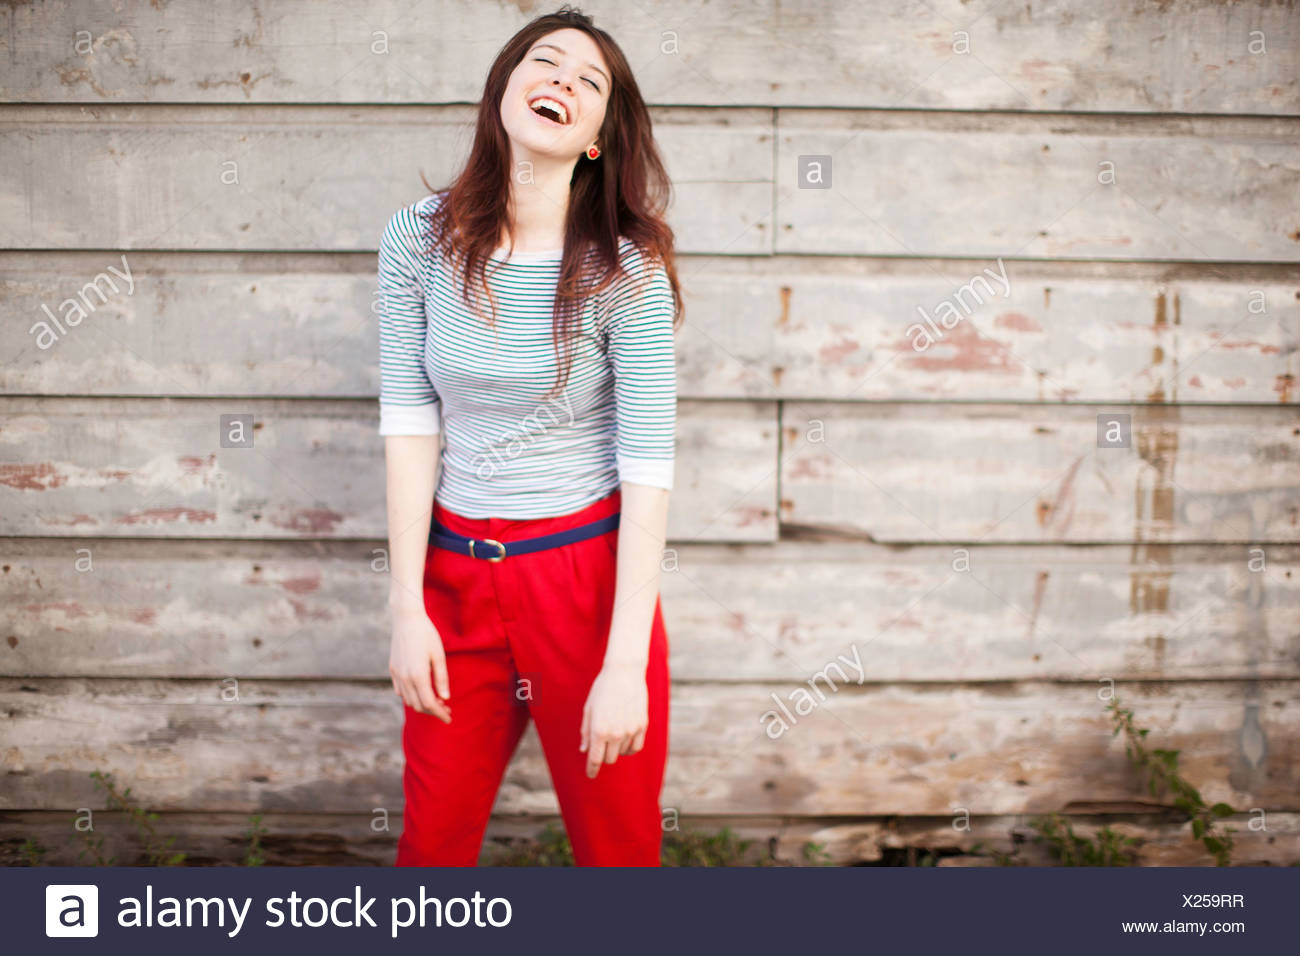 Portrait of young woman laughing - Stock Image